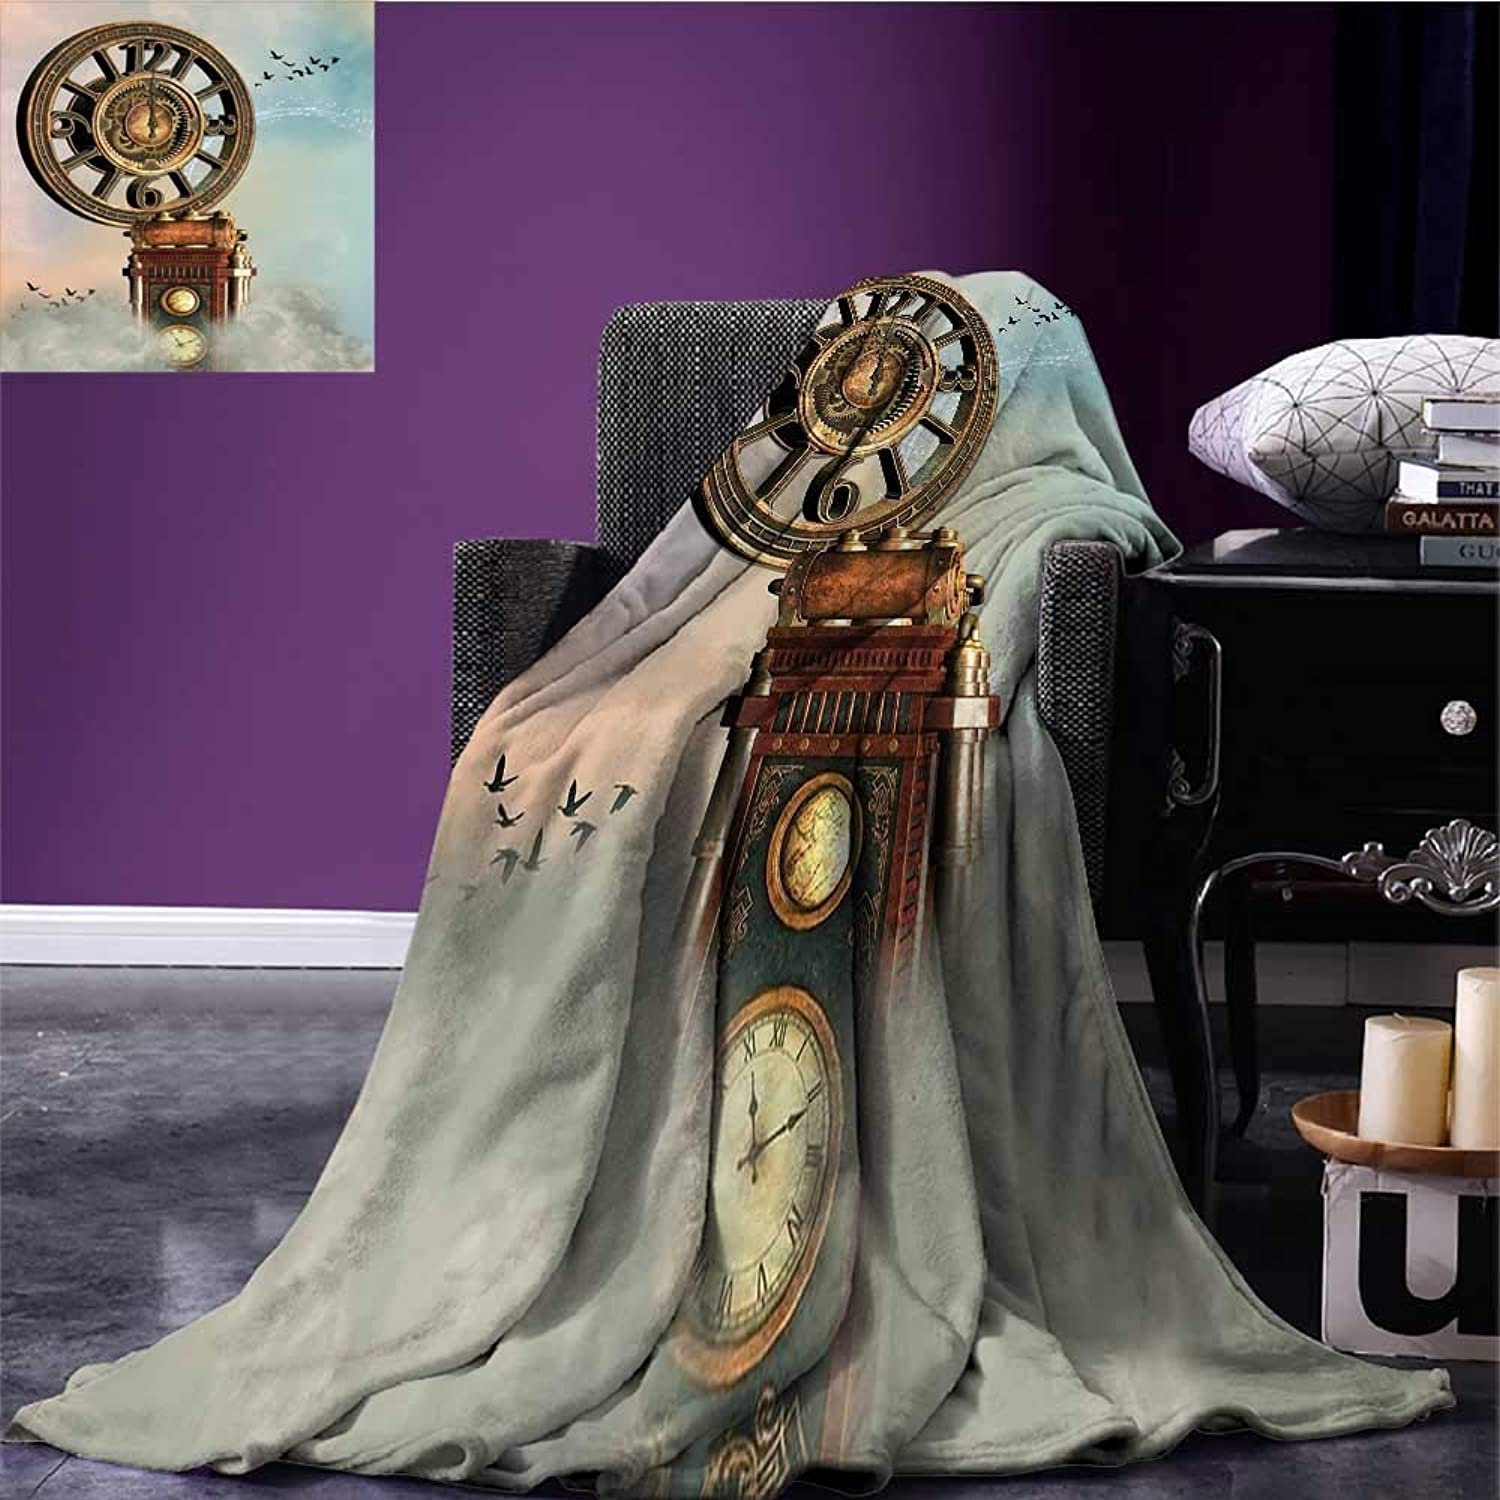 Fantasy Lightweight Blanket Magical Enchanted Landscape Big Antique Clock Flying Birds Fairytale Degrees of Comfort Weighted Blanket Pale bluee Brown Pink Bed or Couch 60 x50